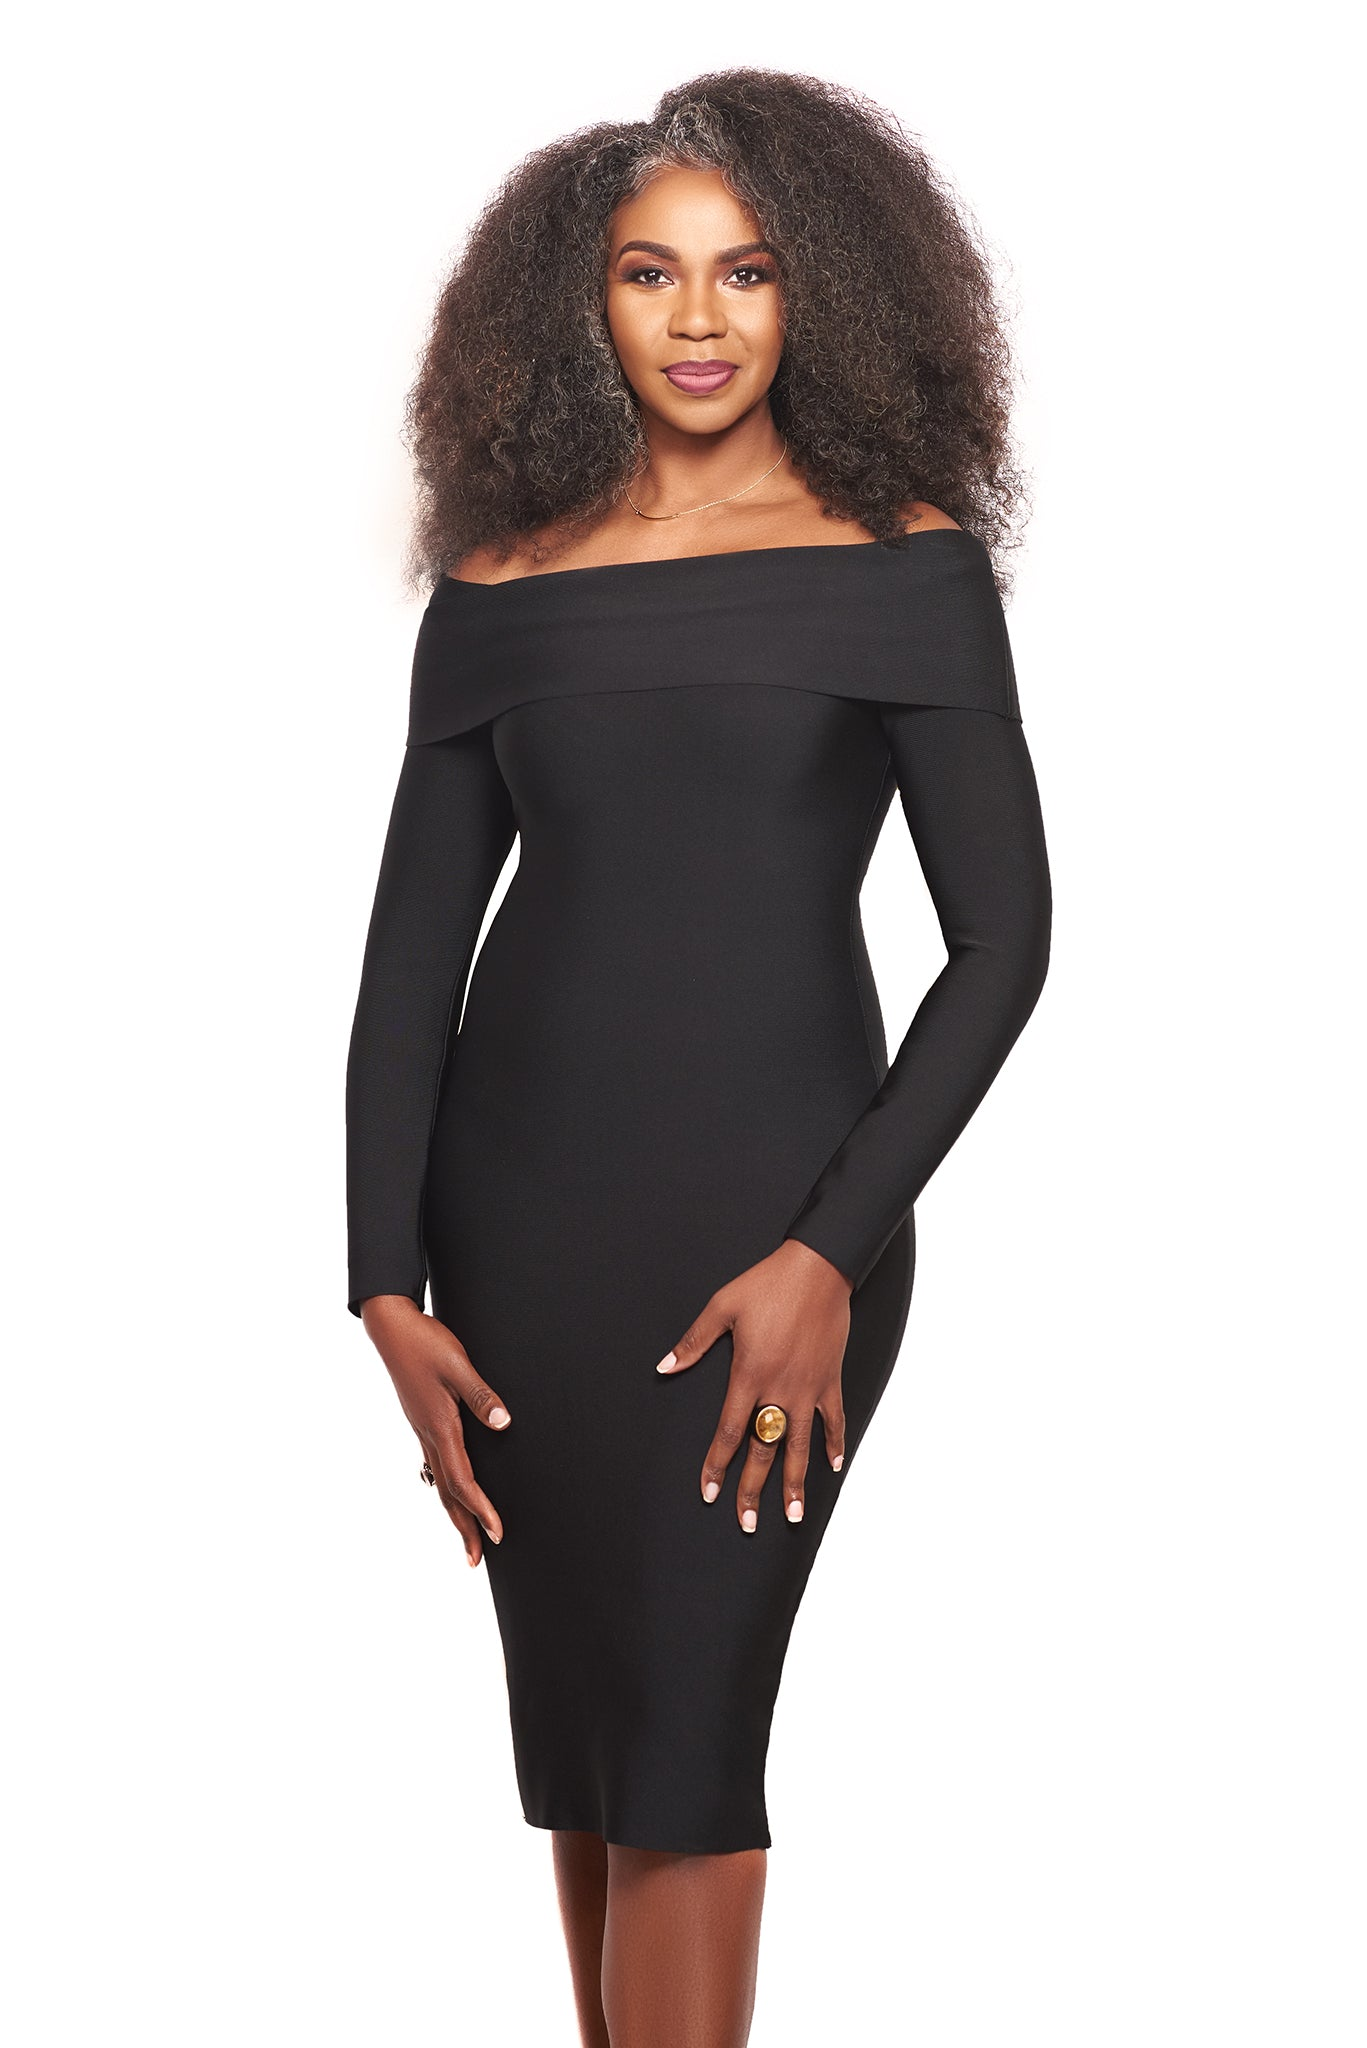 The Fortuna Bandage Dress